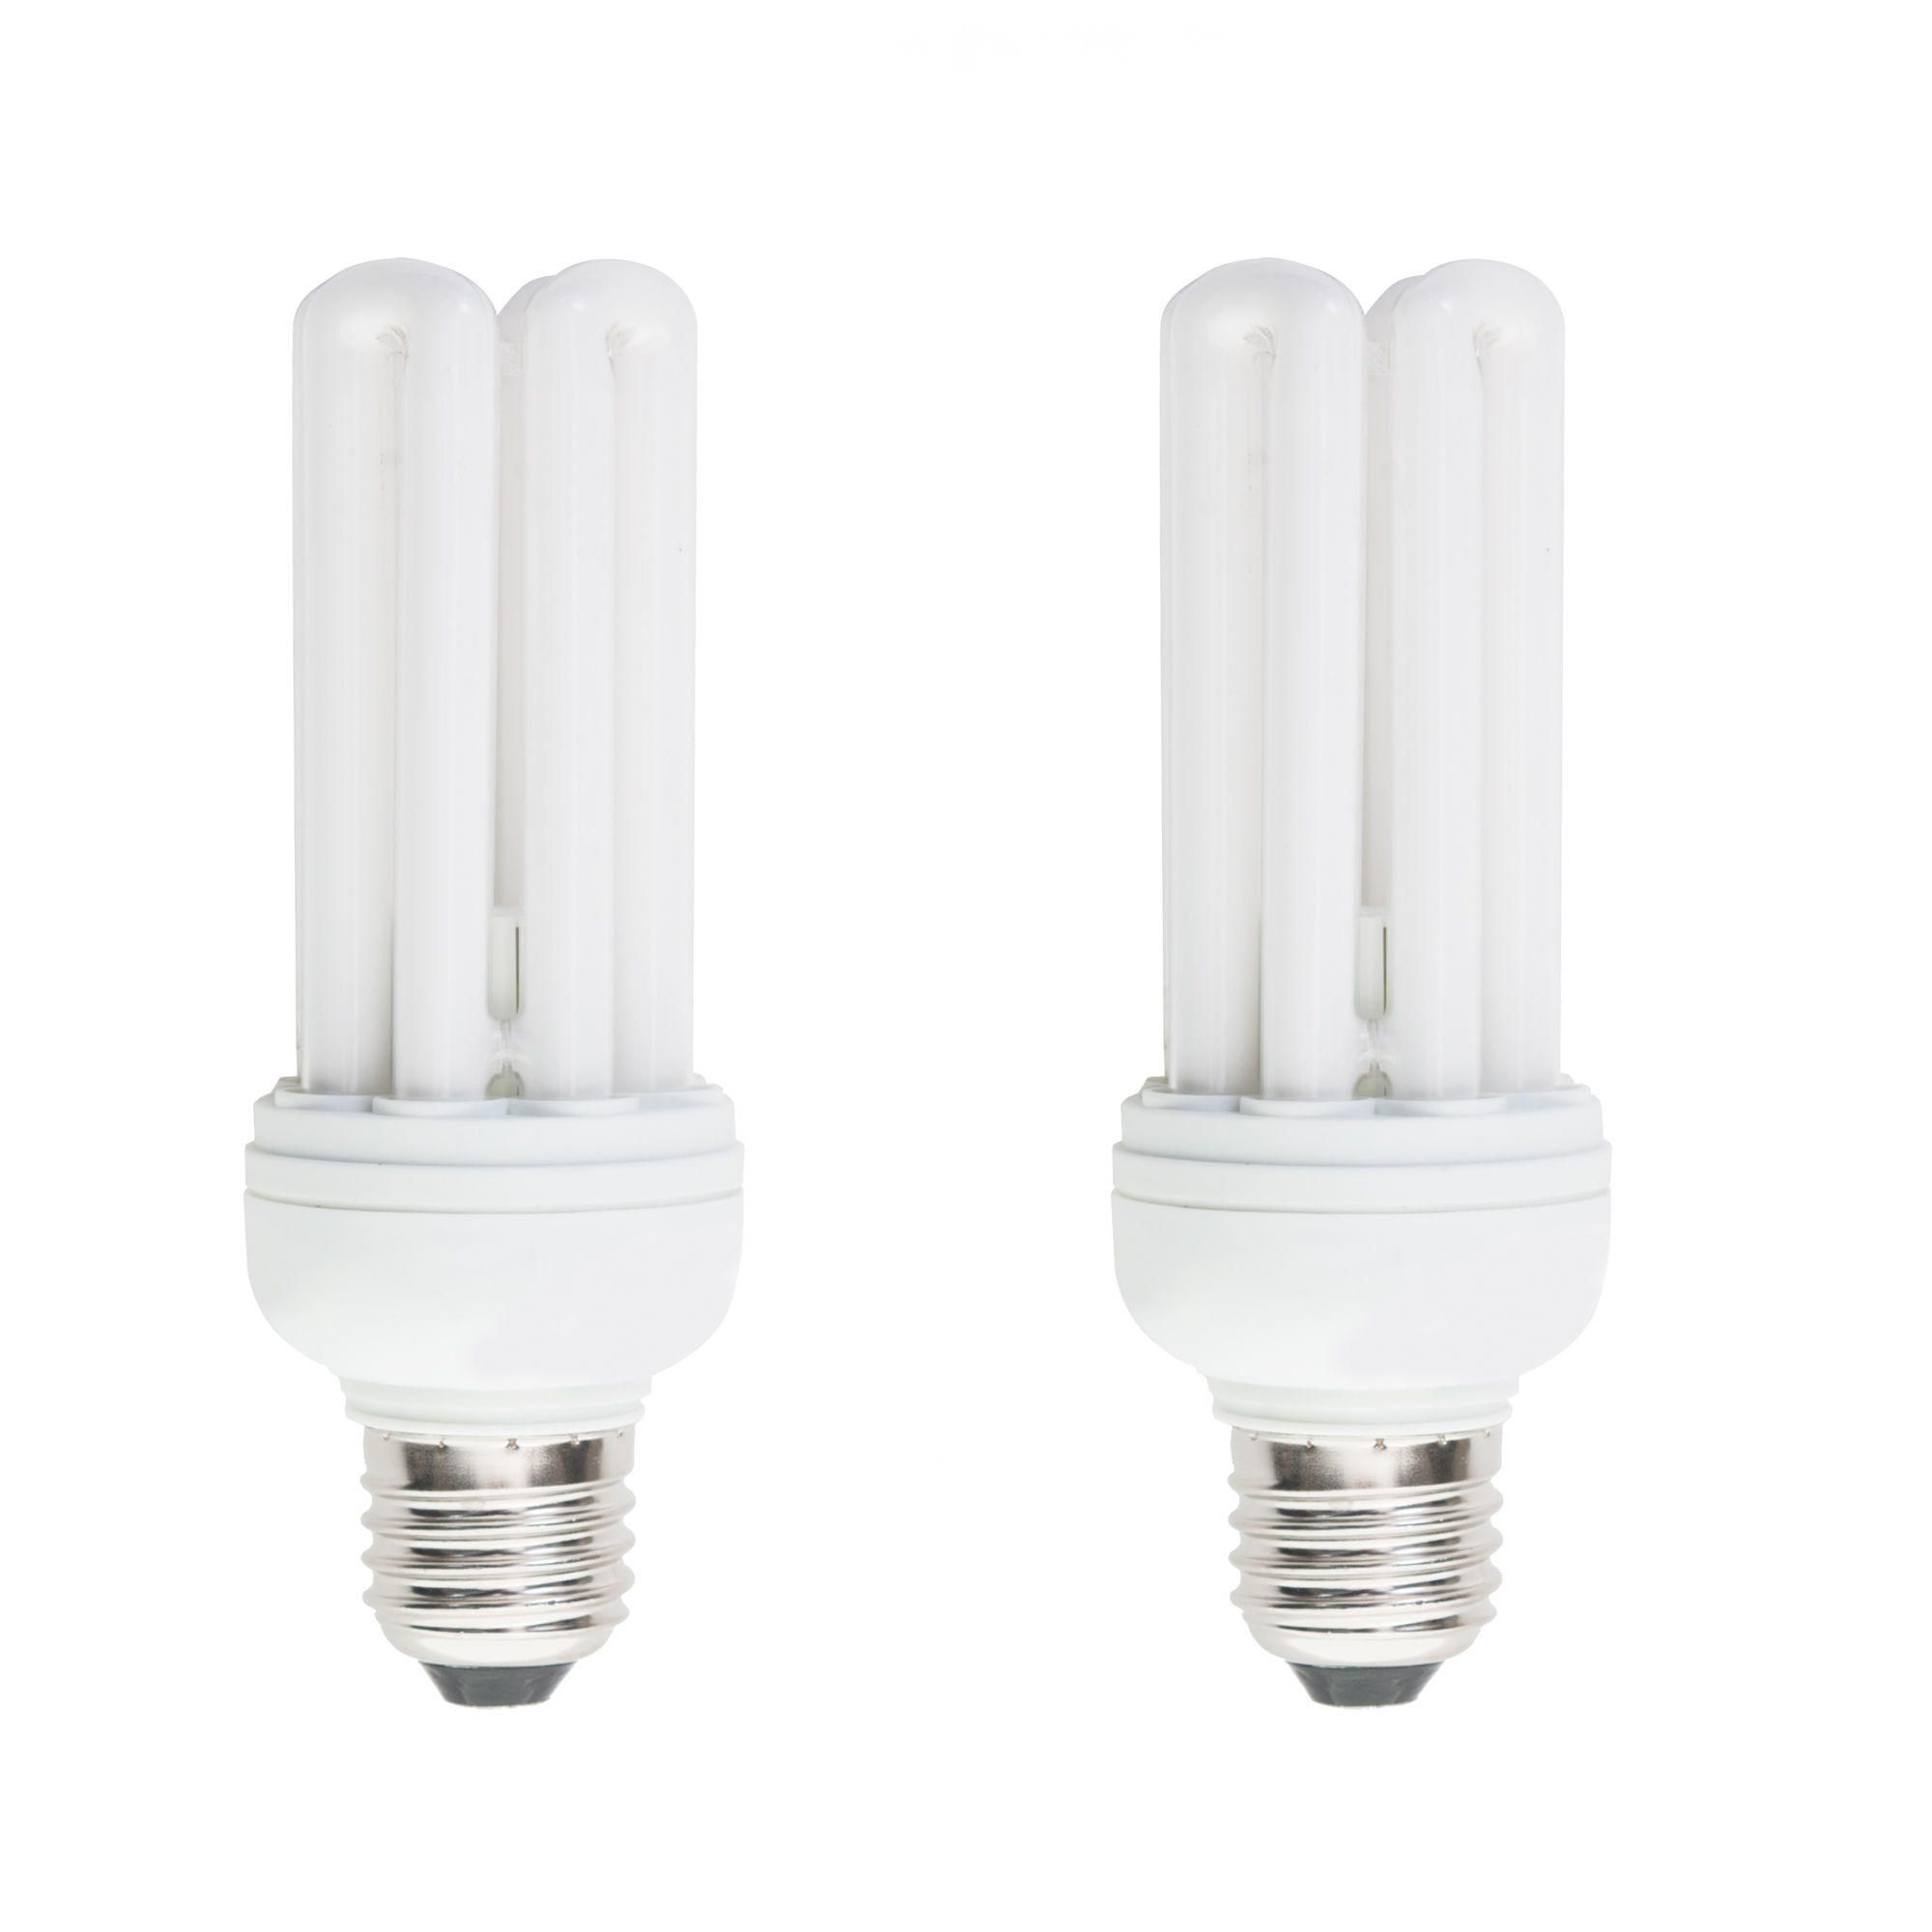 cfl bulbs fluorescent reviews bulb spiral helpful rated compact light sleeklighting base in best lighting customer pcr